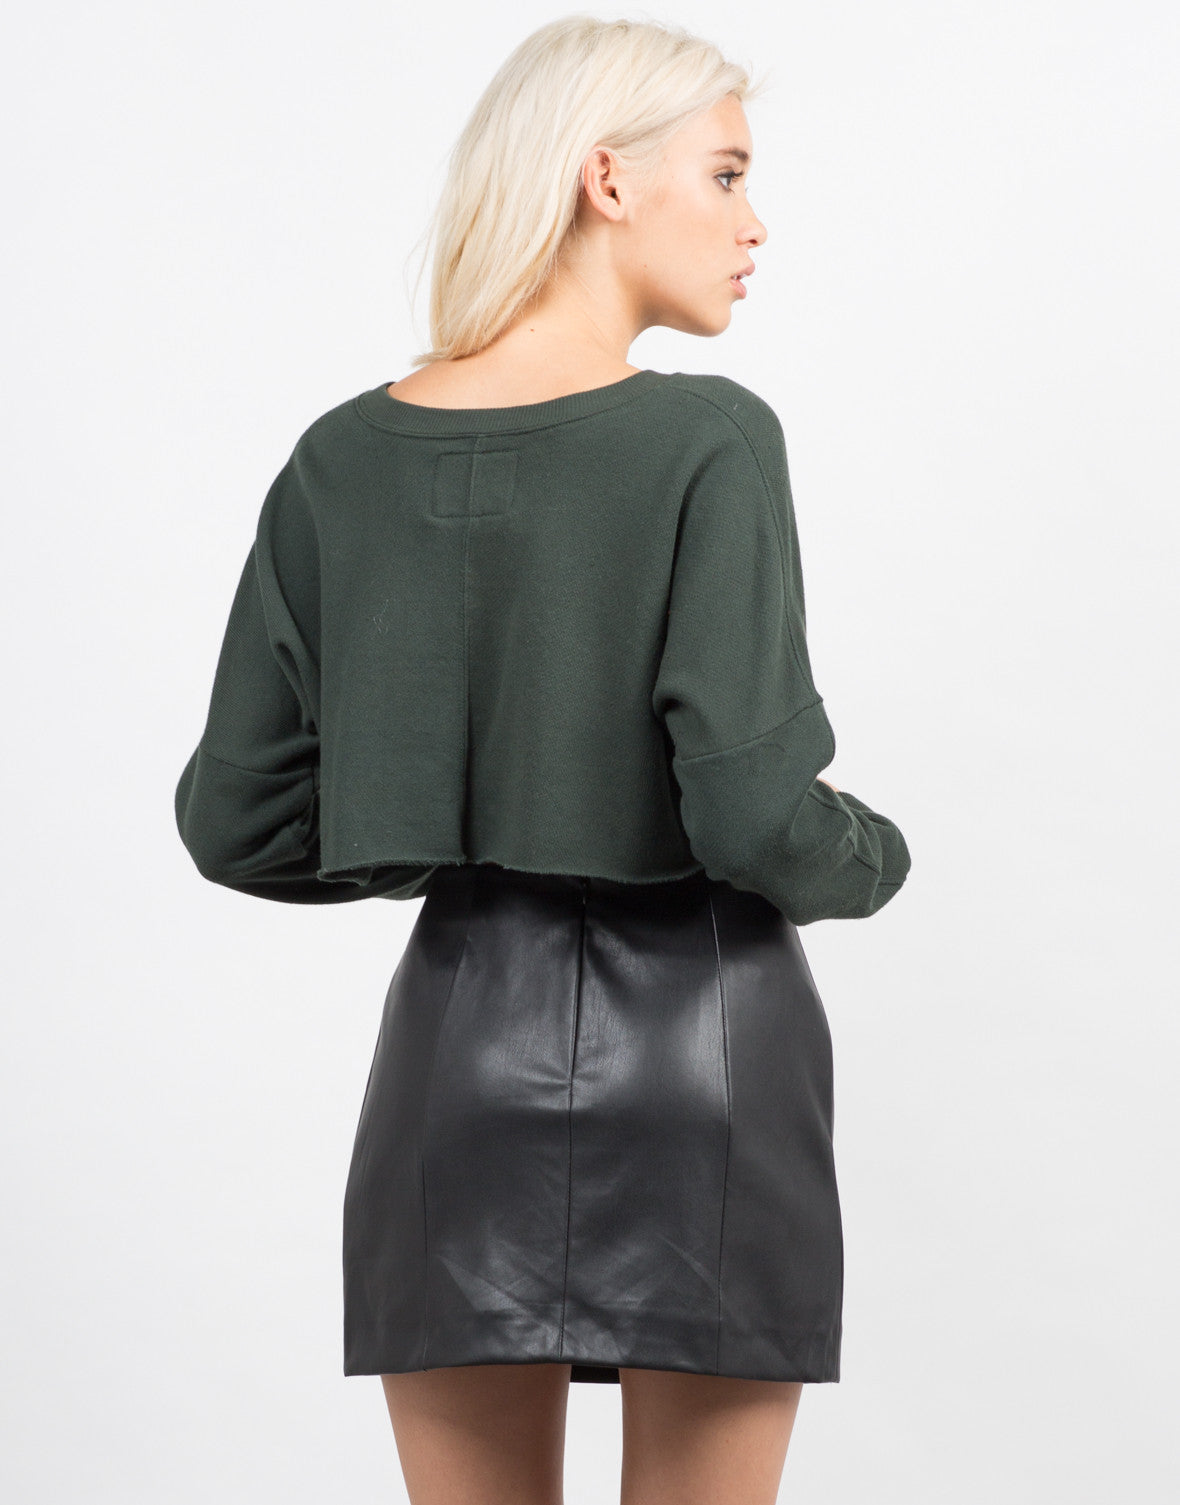 Back View of Lightweight Crop Sweater